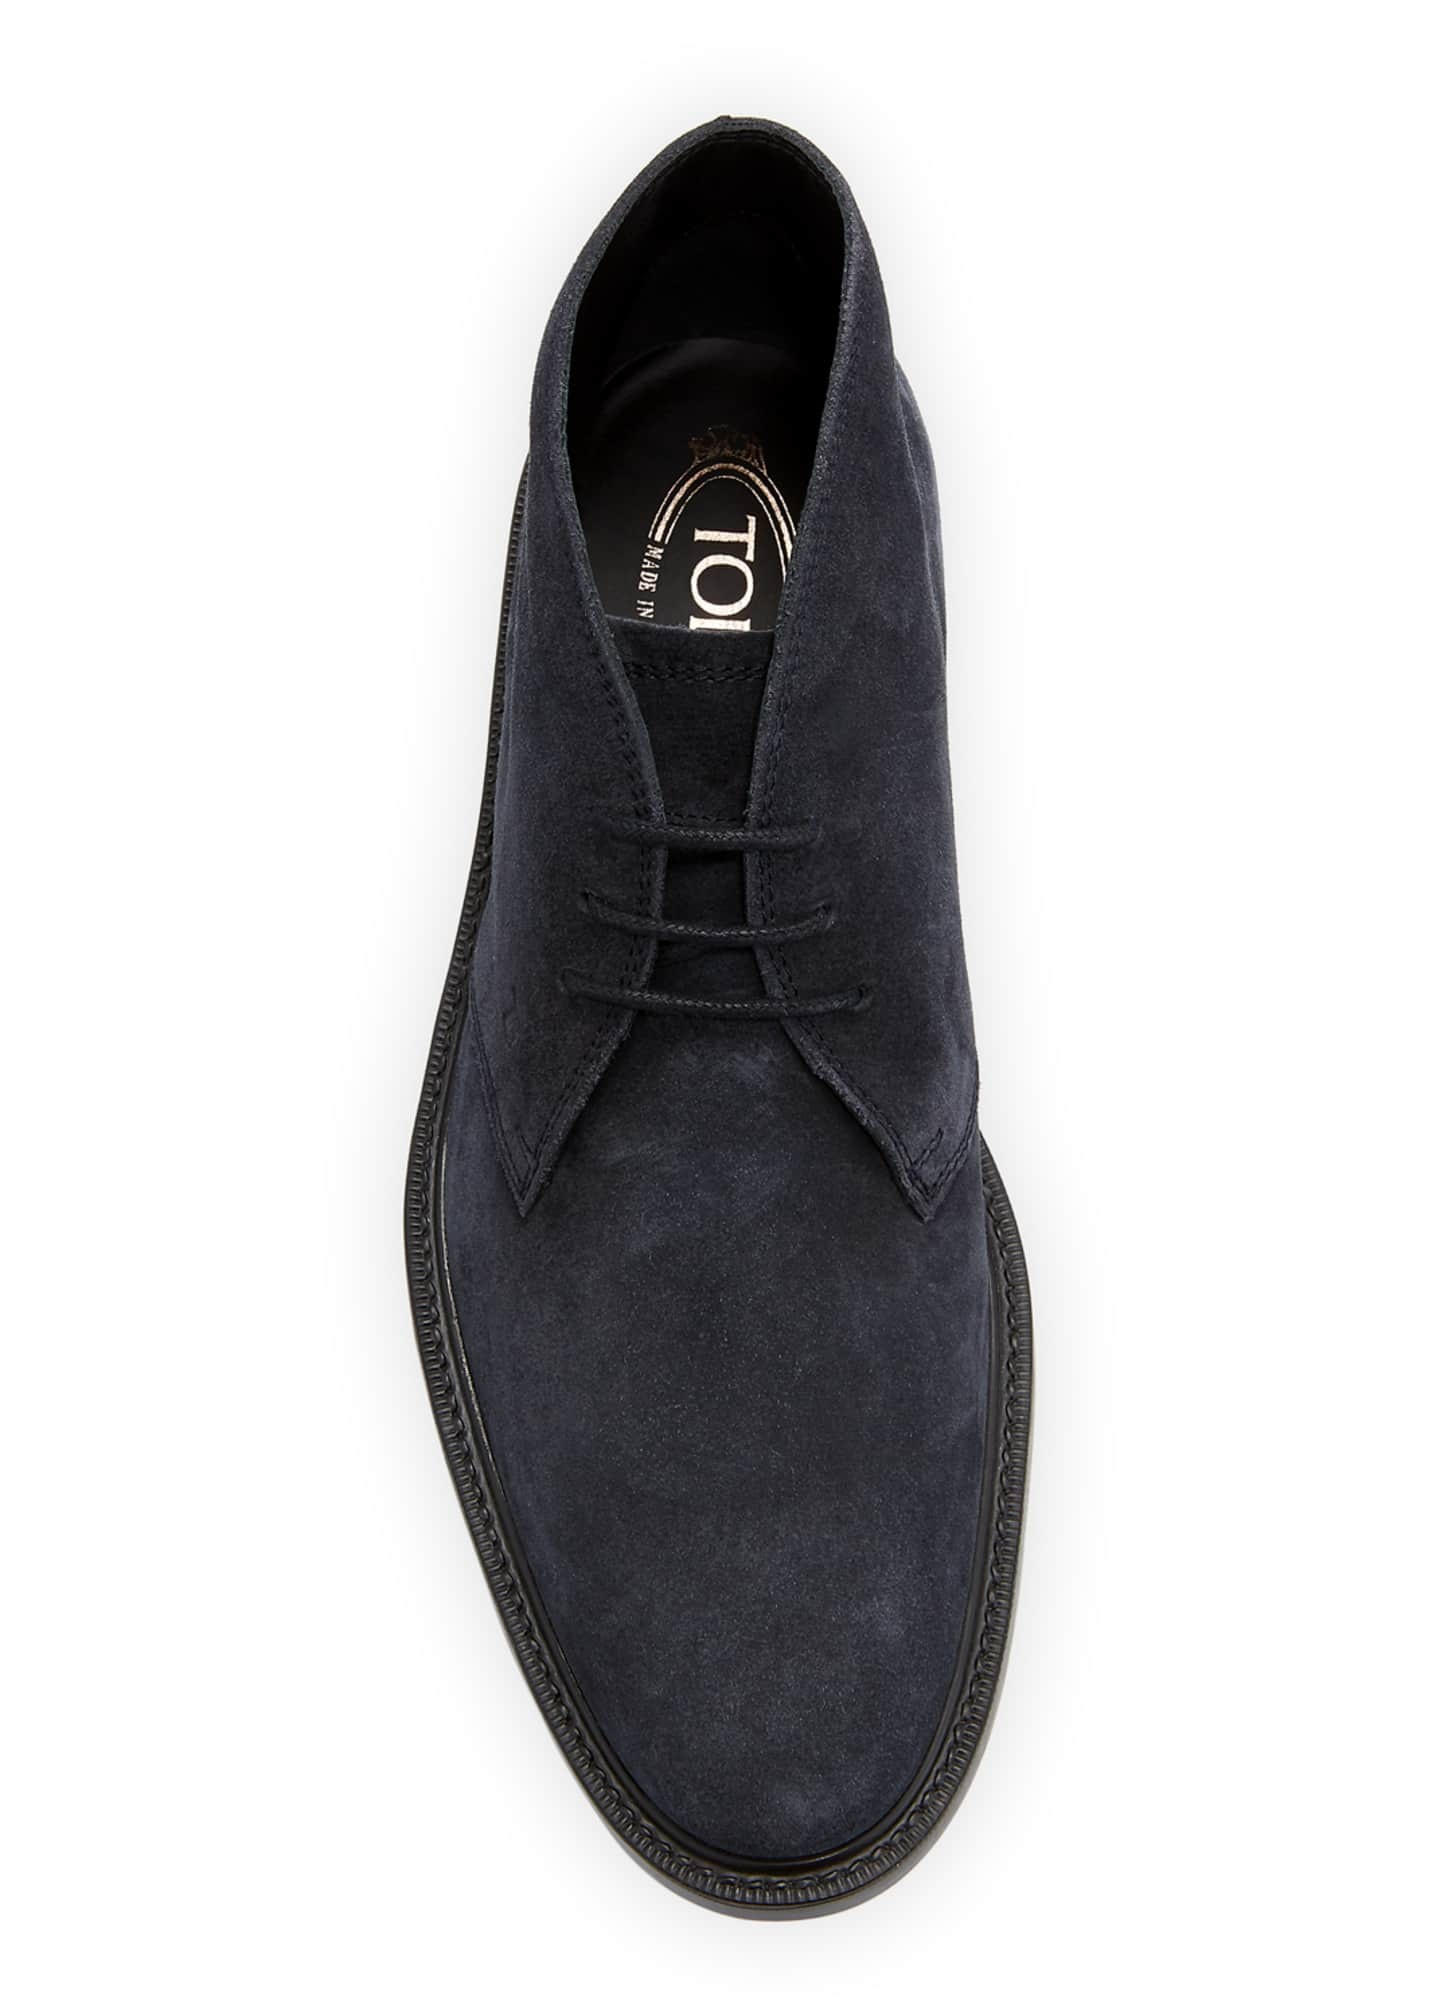 Image 2 of 3: Men's Polacco Suede Chukka Boots